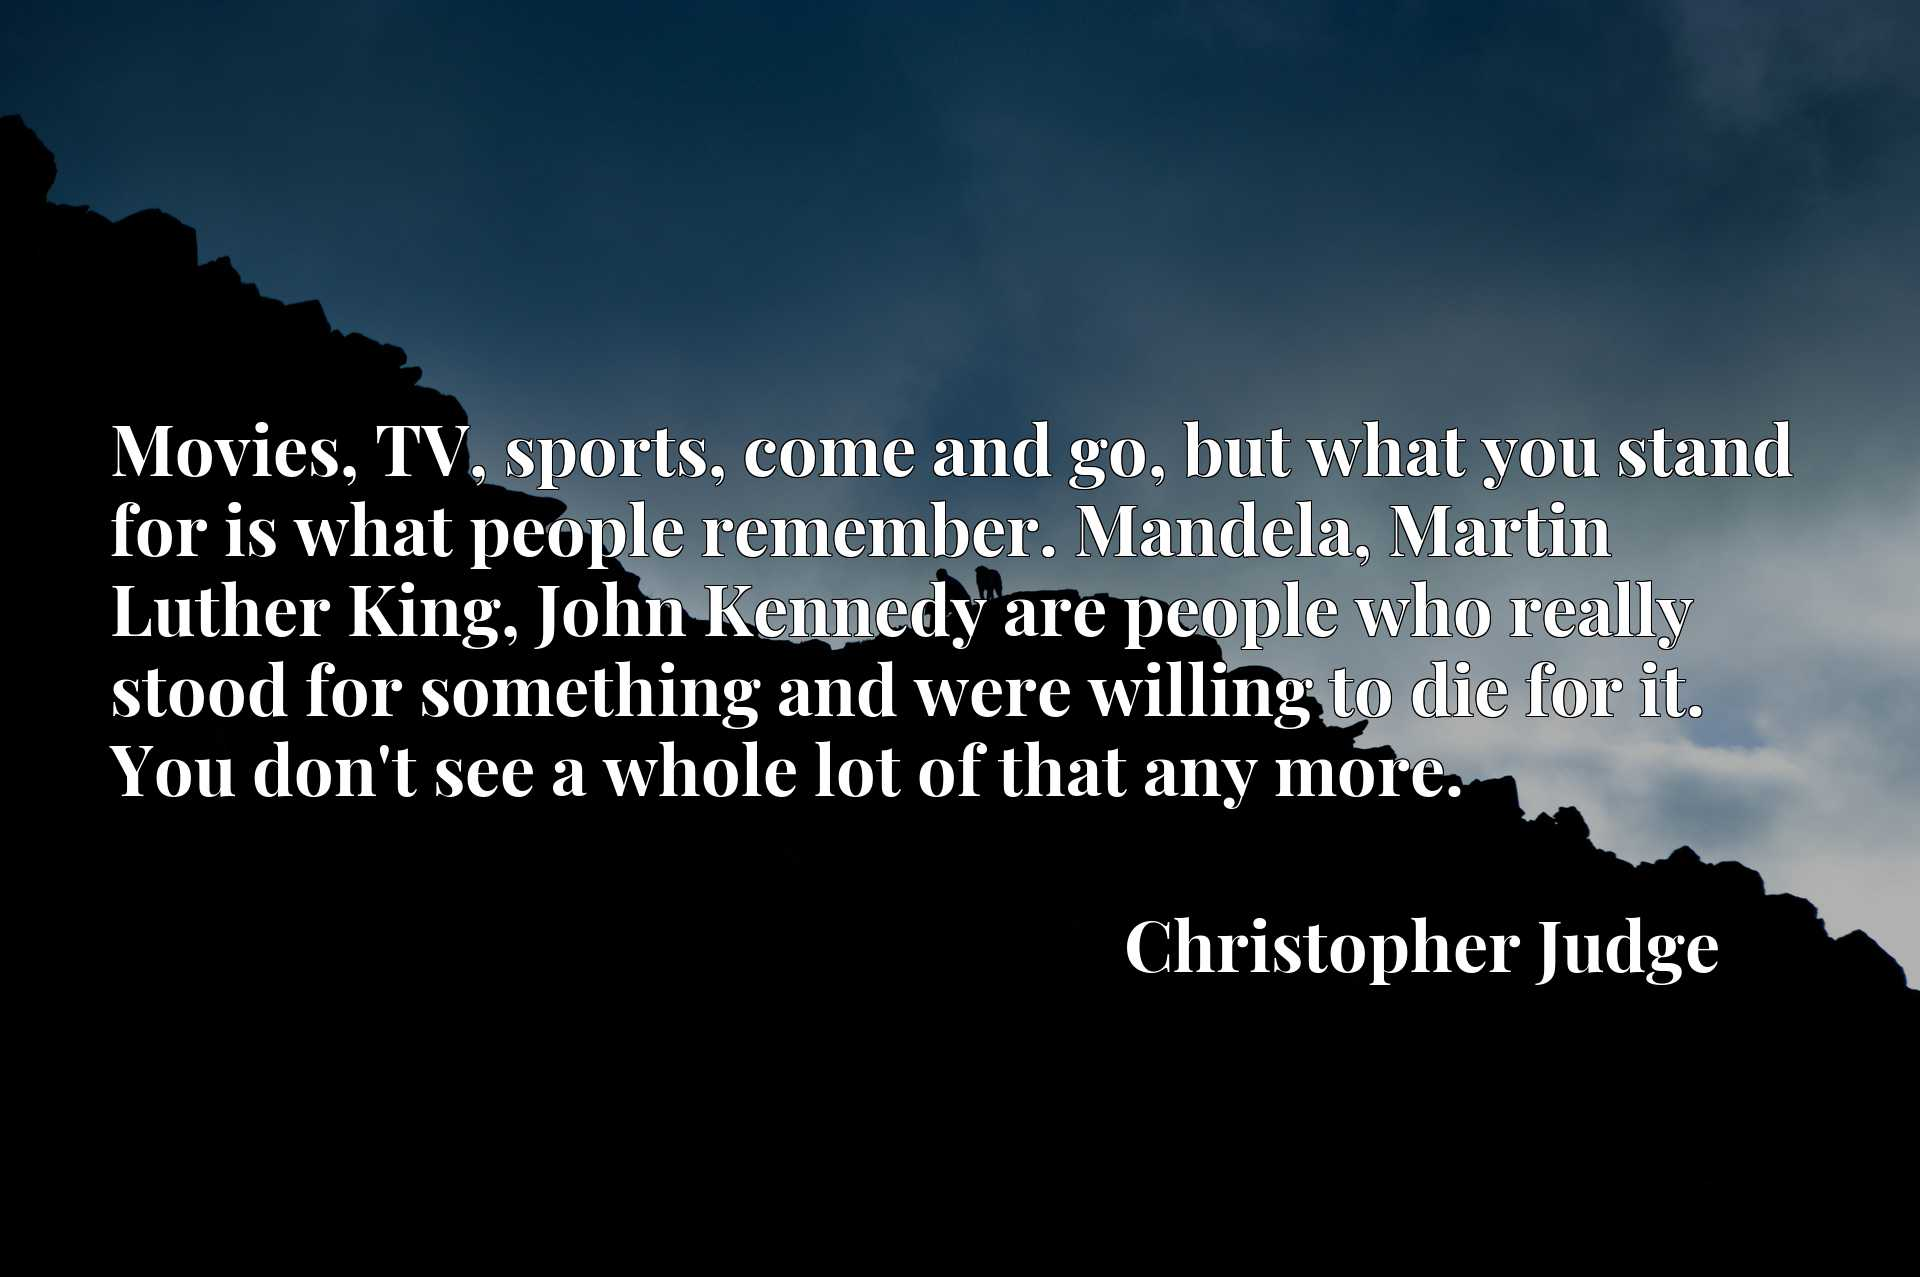 Quote Picture :Movies, TV, sports, come and go, but what you stand for is what people remember. Mandela, Martin Luther King, John Kennedy are people who really stood for something and were willing to die for it. You don't see a whole lot of that any more.